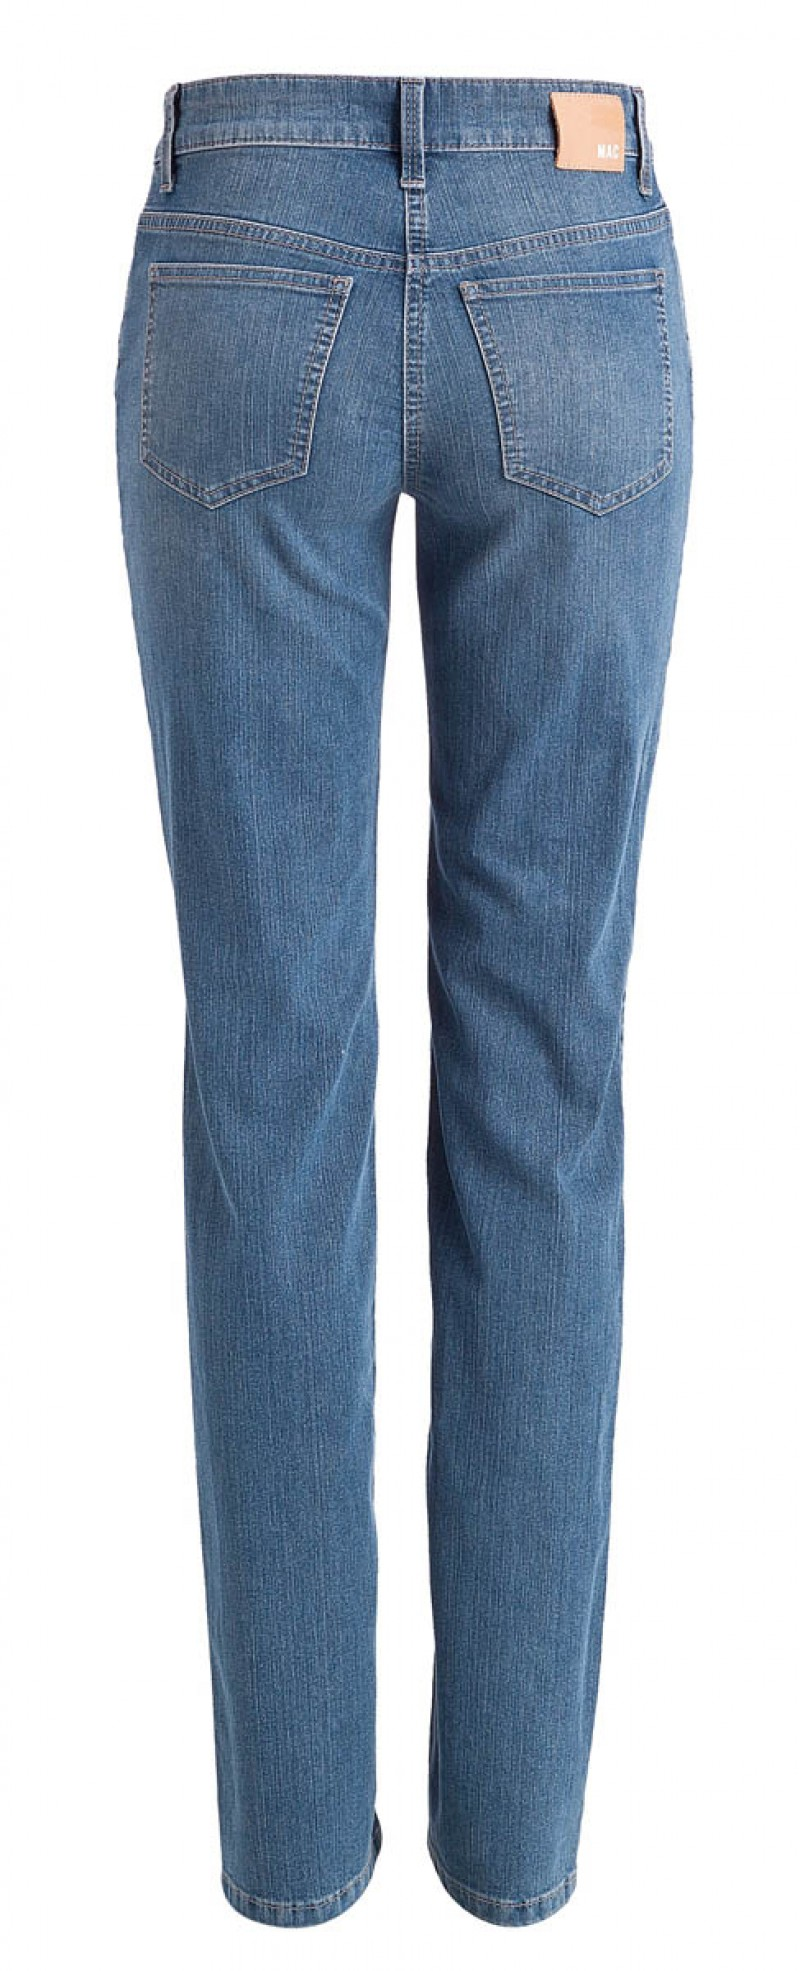 Mac Jeans Angela - Straight Leg - Stone